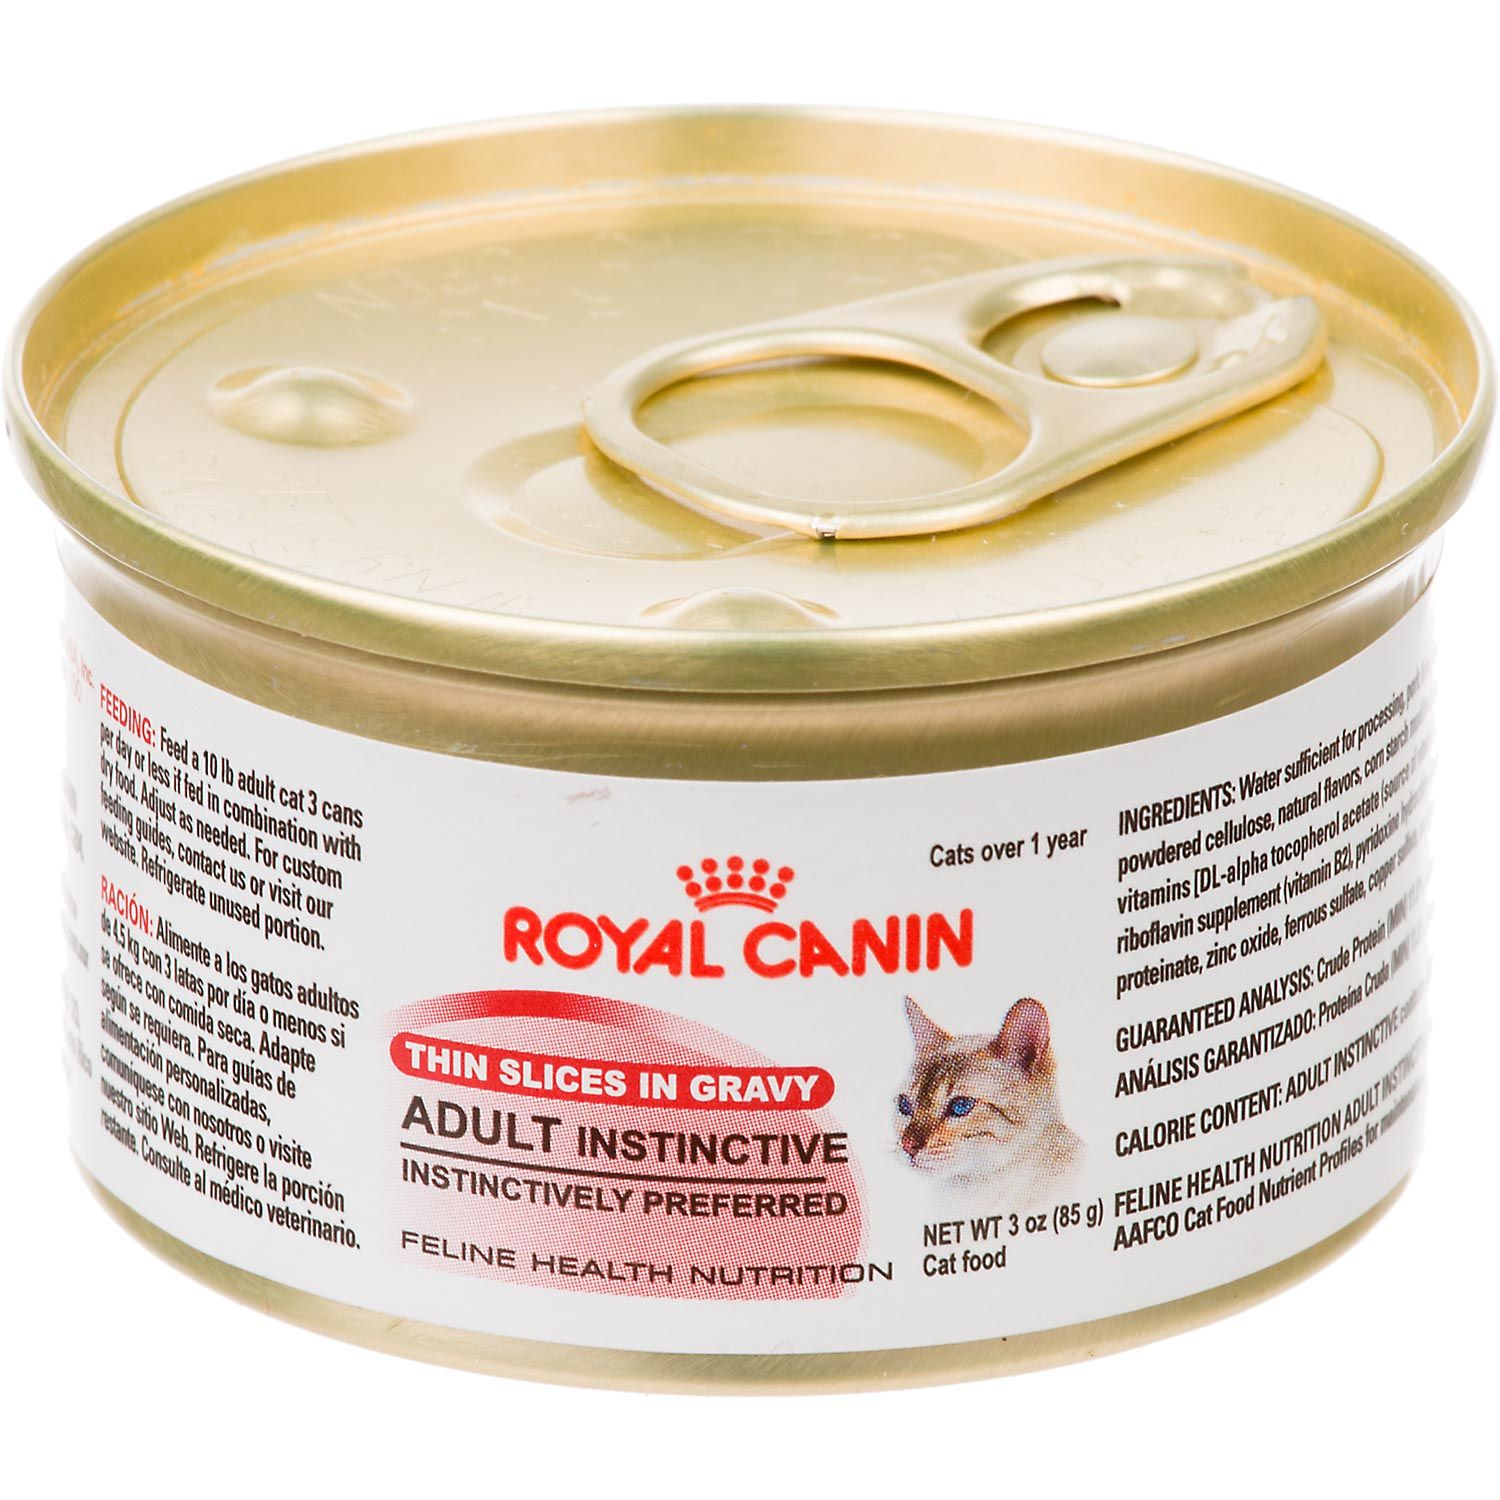 Royal Canin Feline Health Nutrition Adult Instinctive